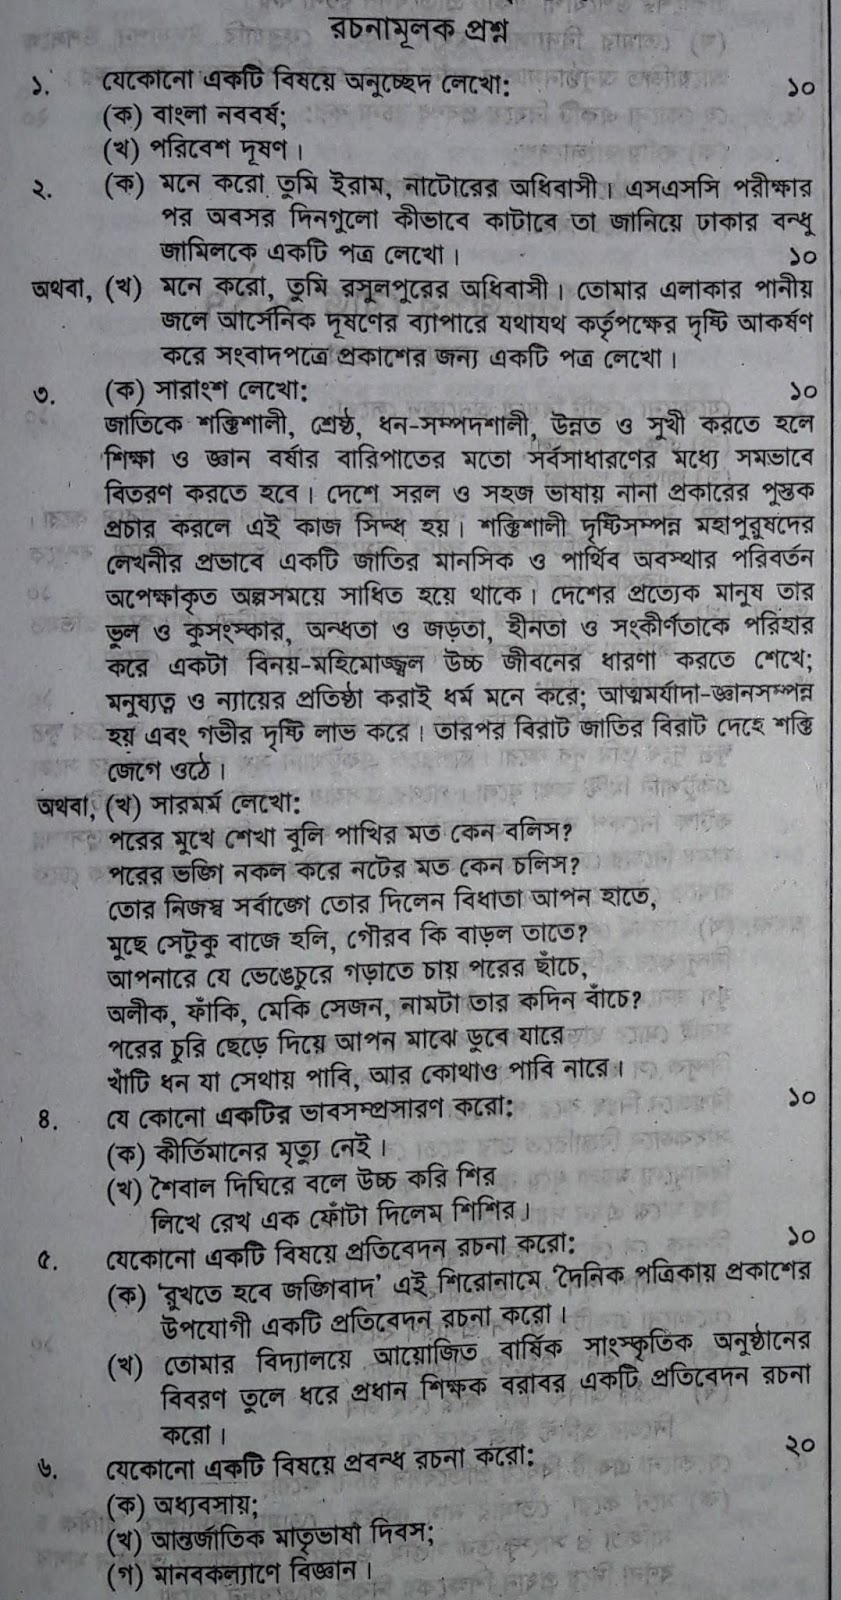 SSC Bangla 2nd Paper Model Question - 01